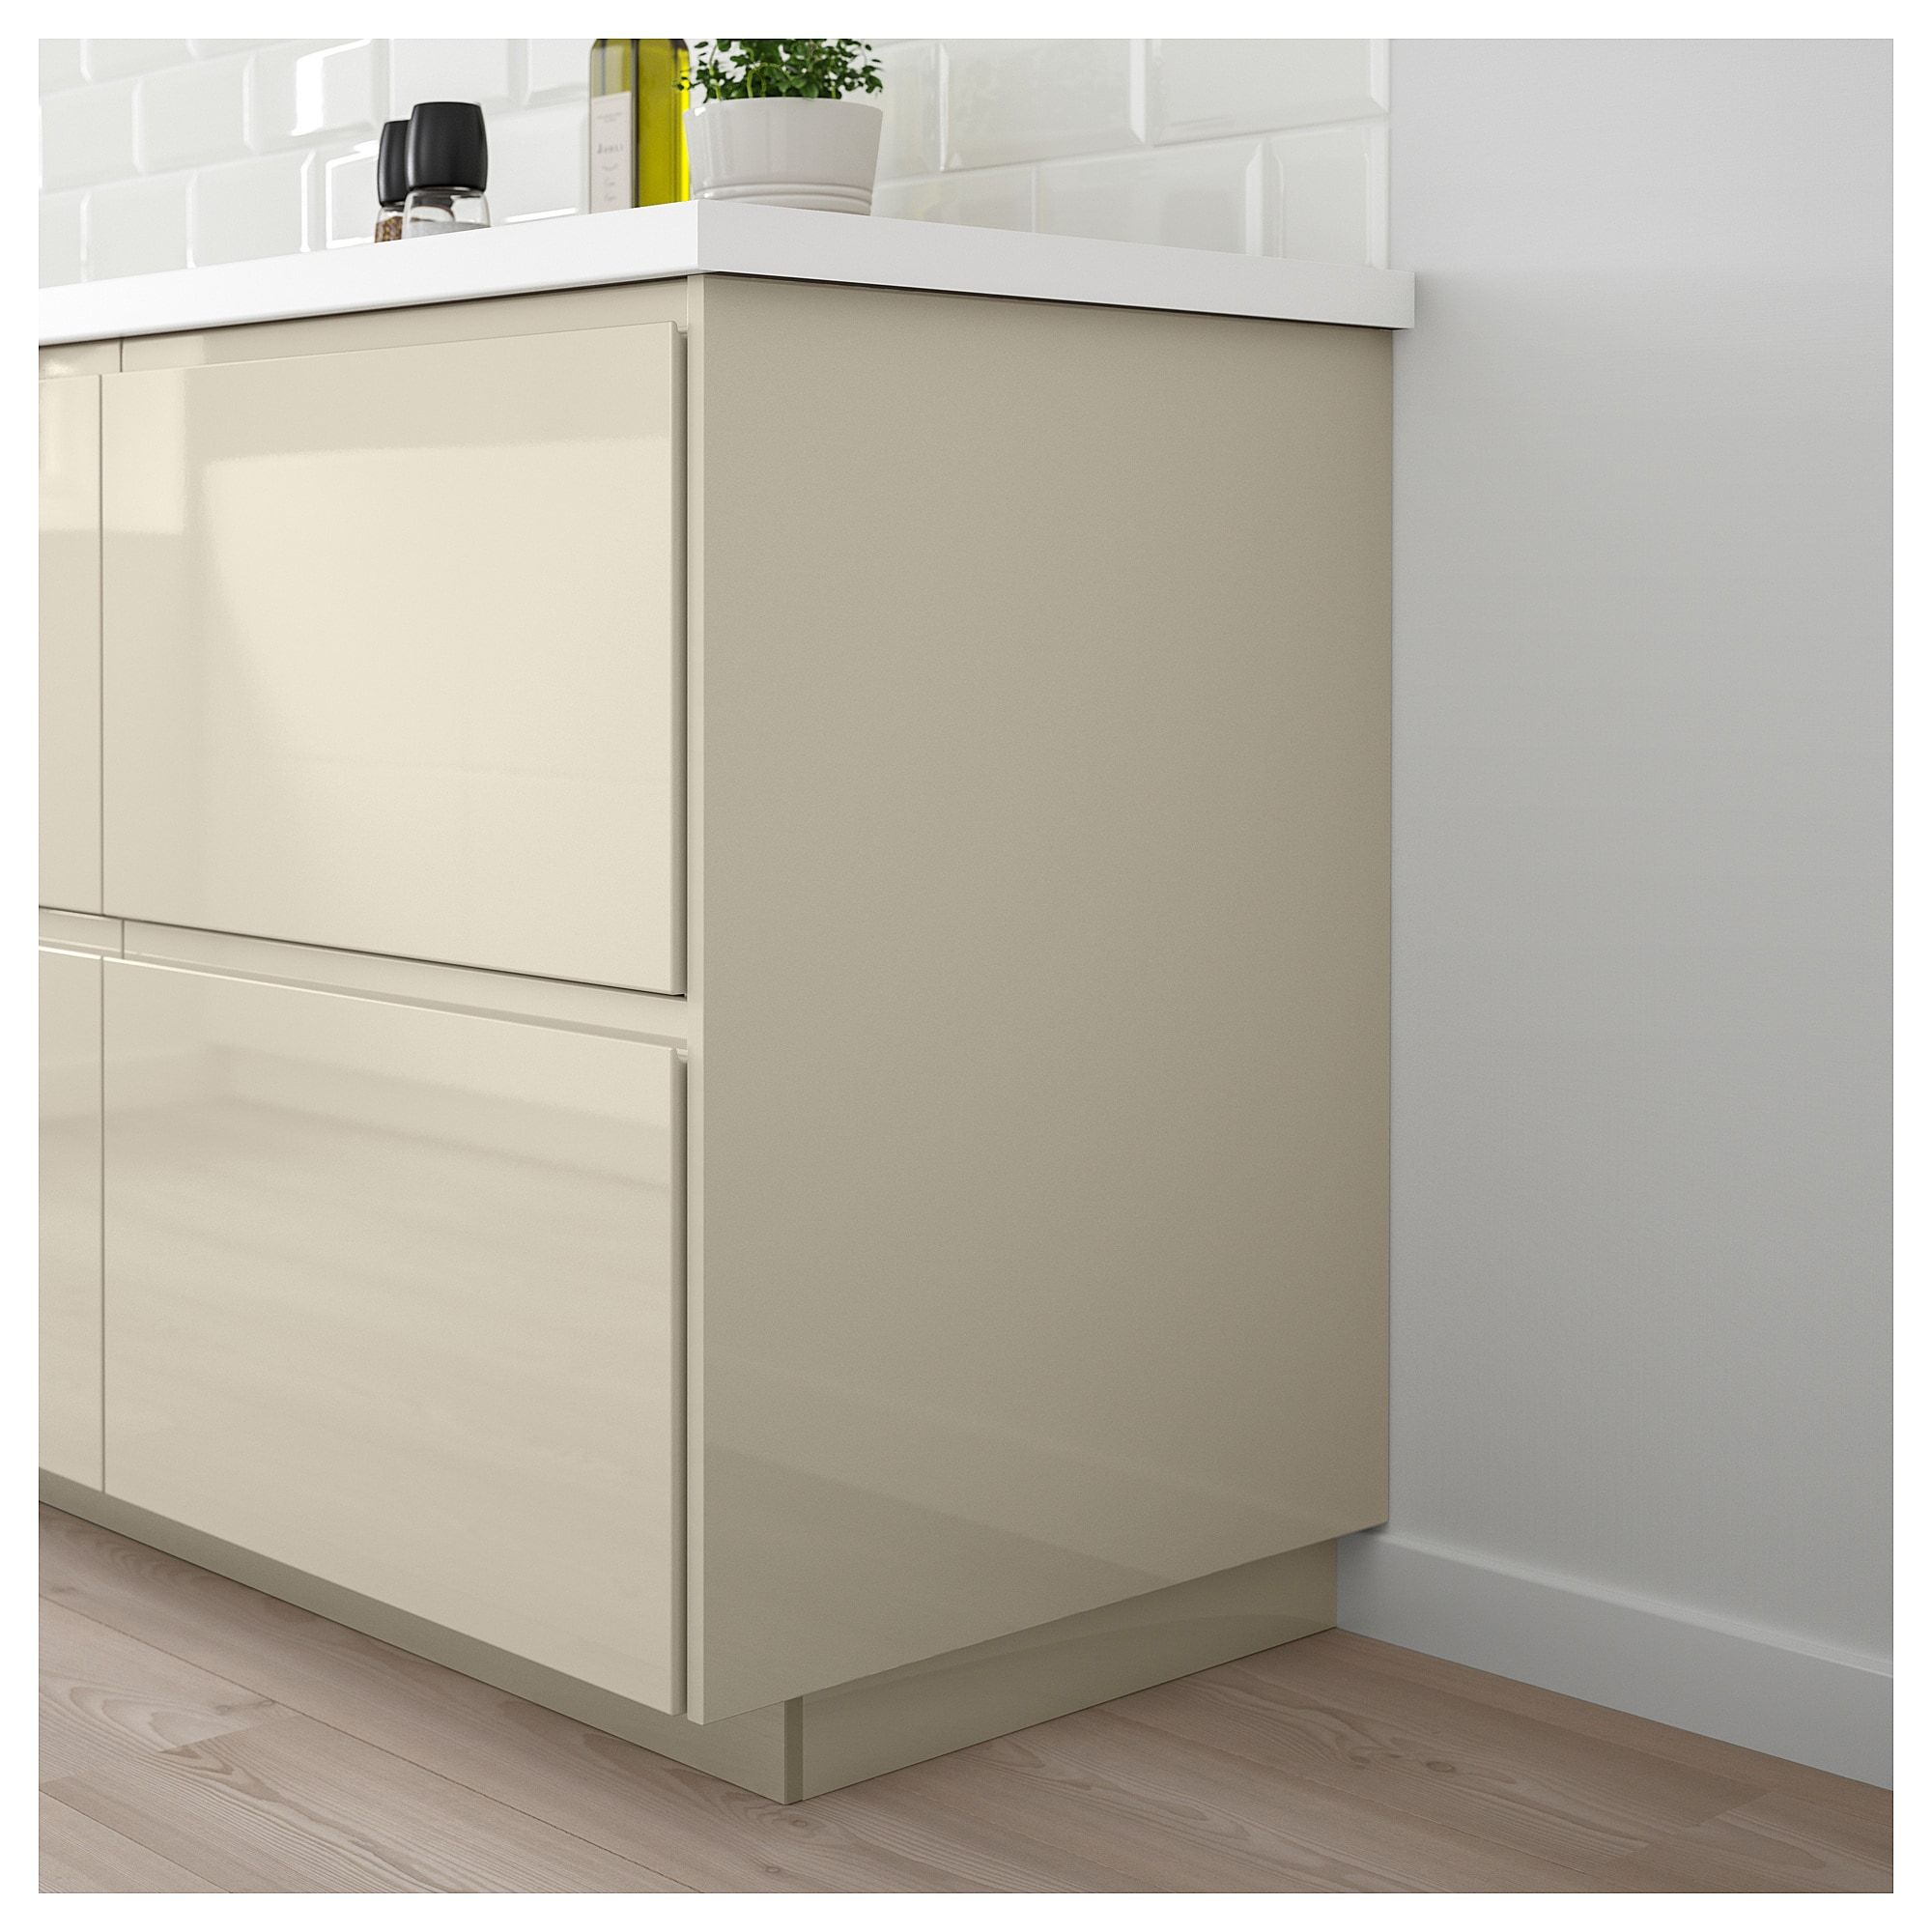 Eckunterschrank Bad Voxtorp Deckseite Hochglanz Hellbeige In 2019 Products Kitchen